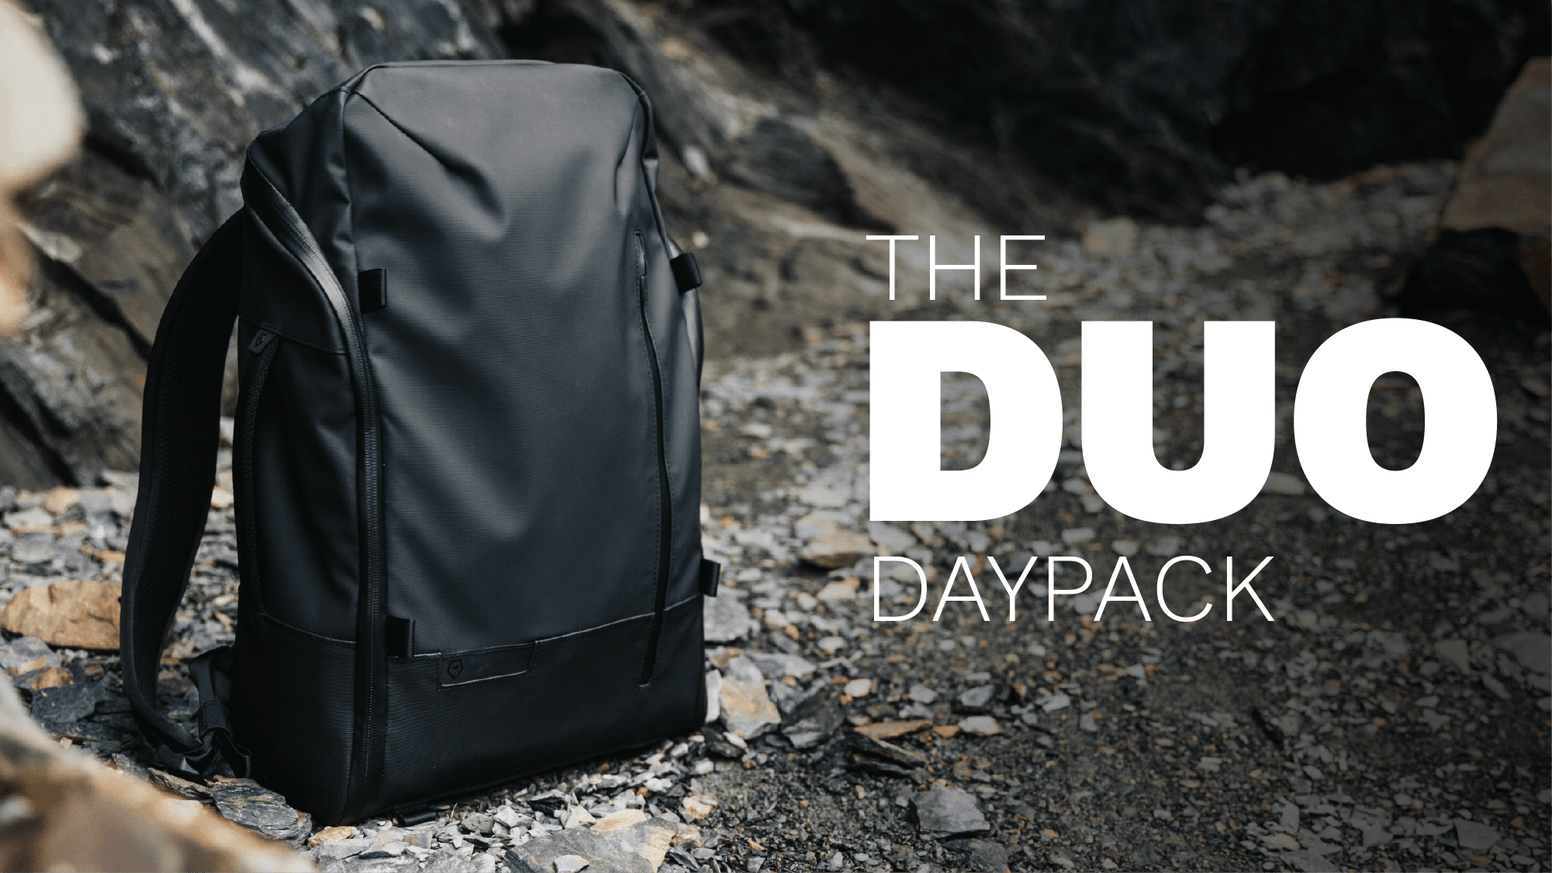 A dawn-to-dusk daypack for commuters, creators, photographers, and travelers looking to elevate the way they carry their daily gear.Missed our campaign! Order now through the link below.